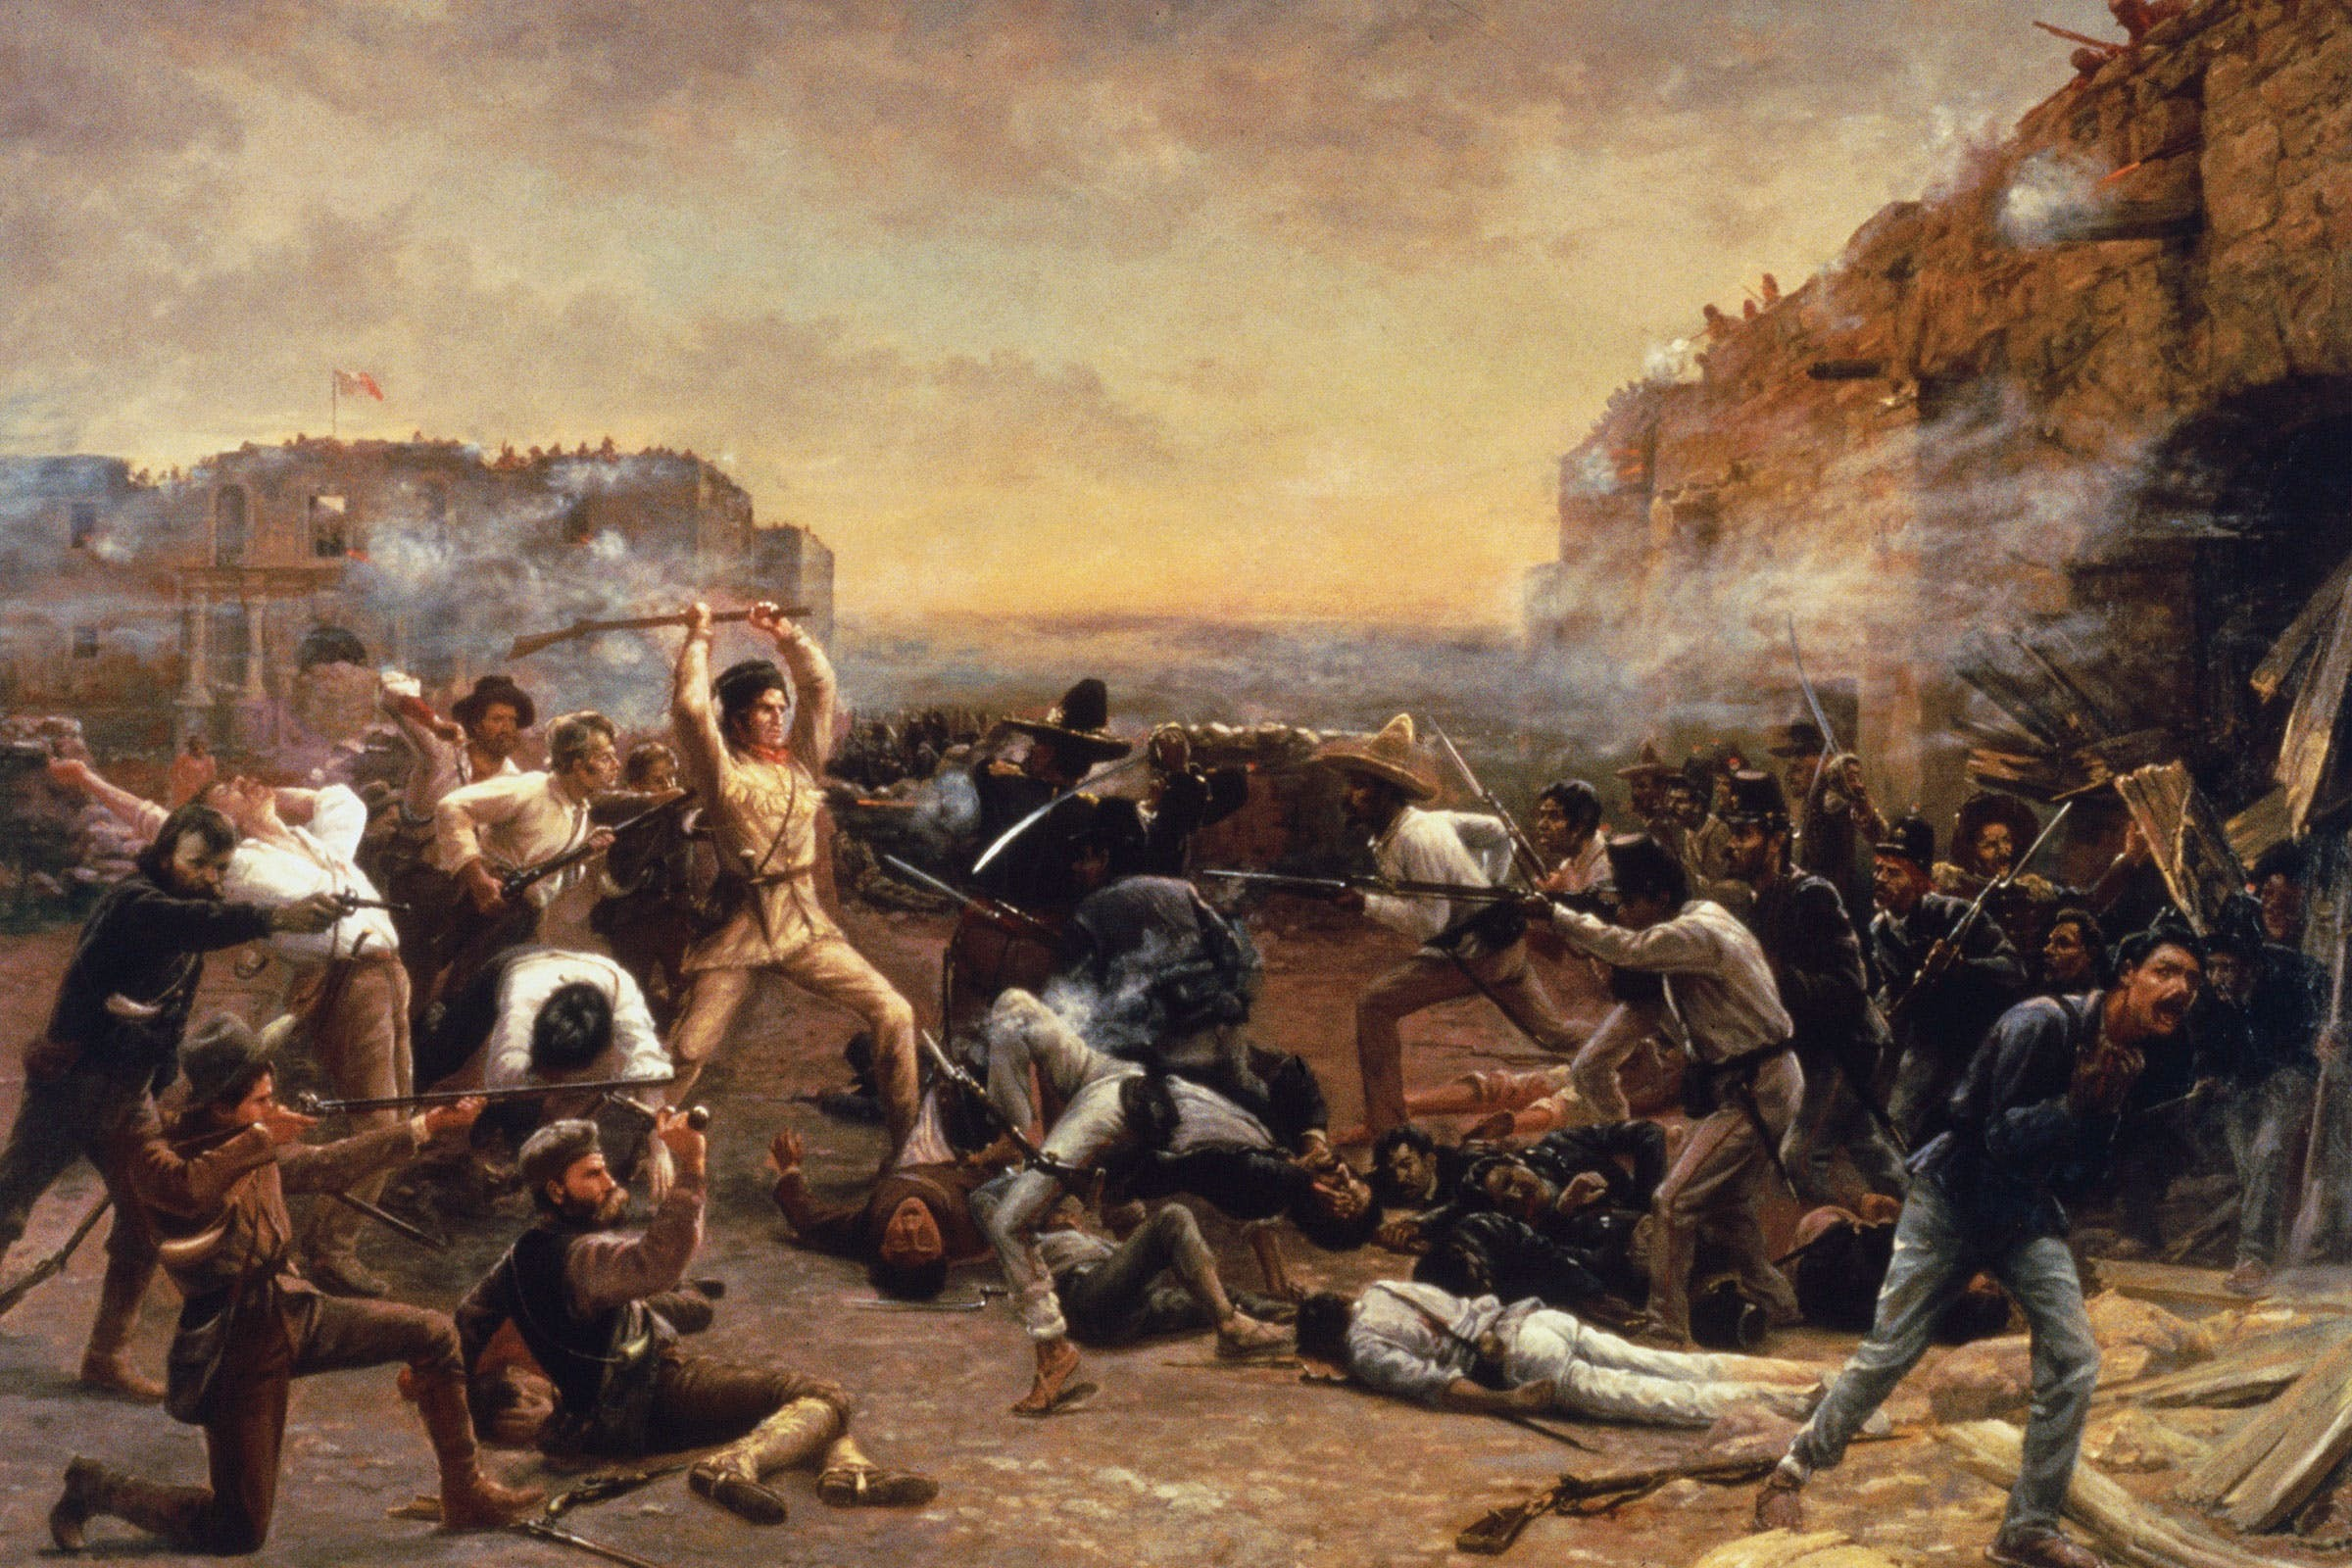 https://upload.wikimedia.org/wikipedia/commons/d/de/FalloftheAlamo.jpg